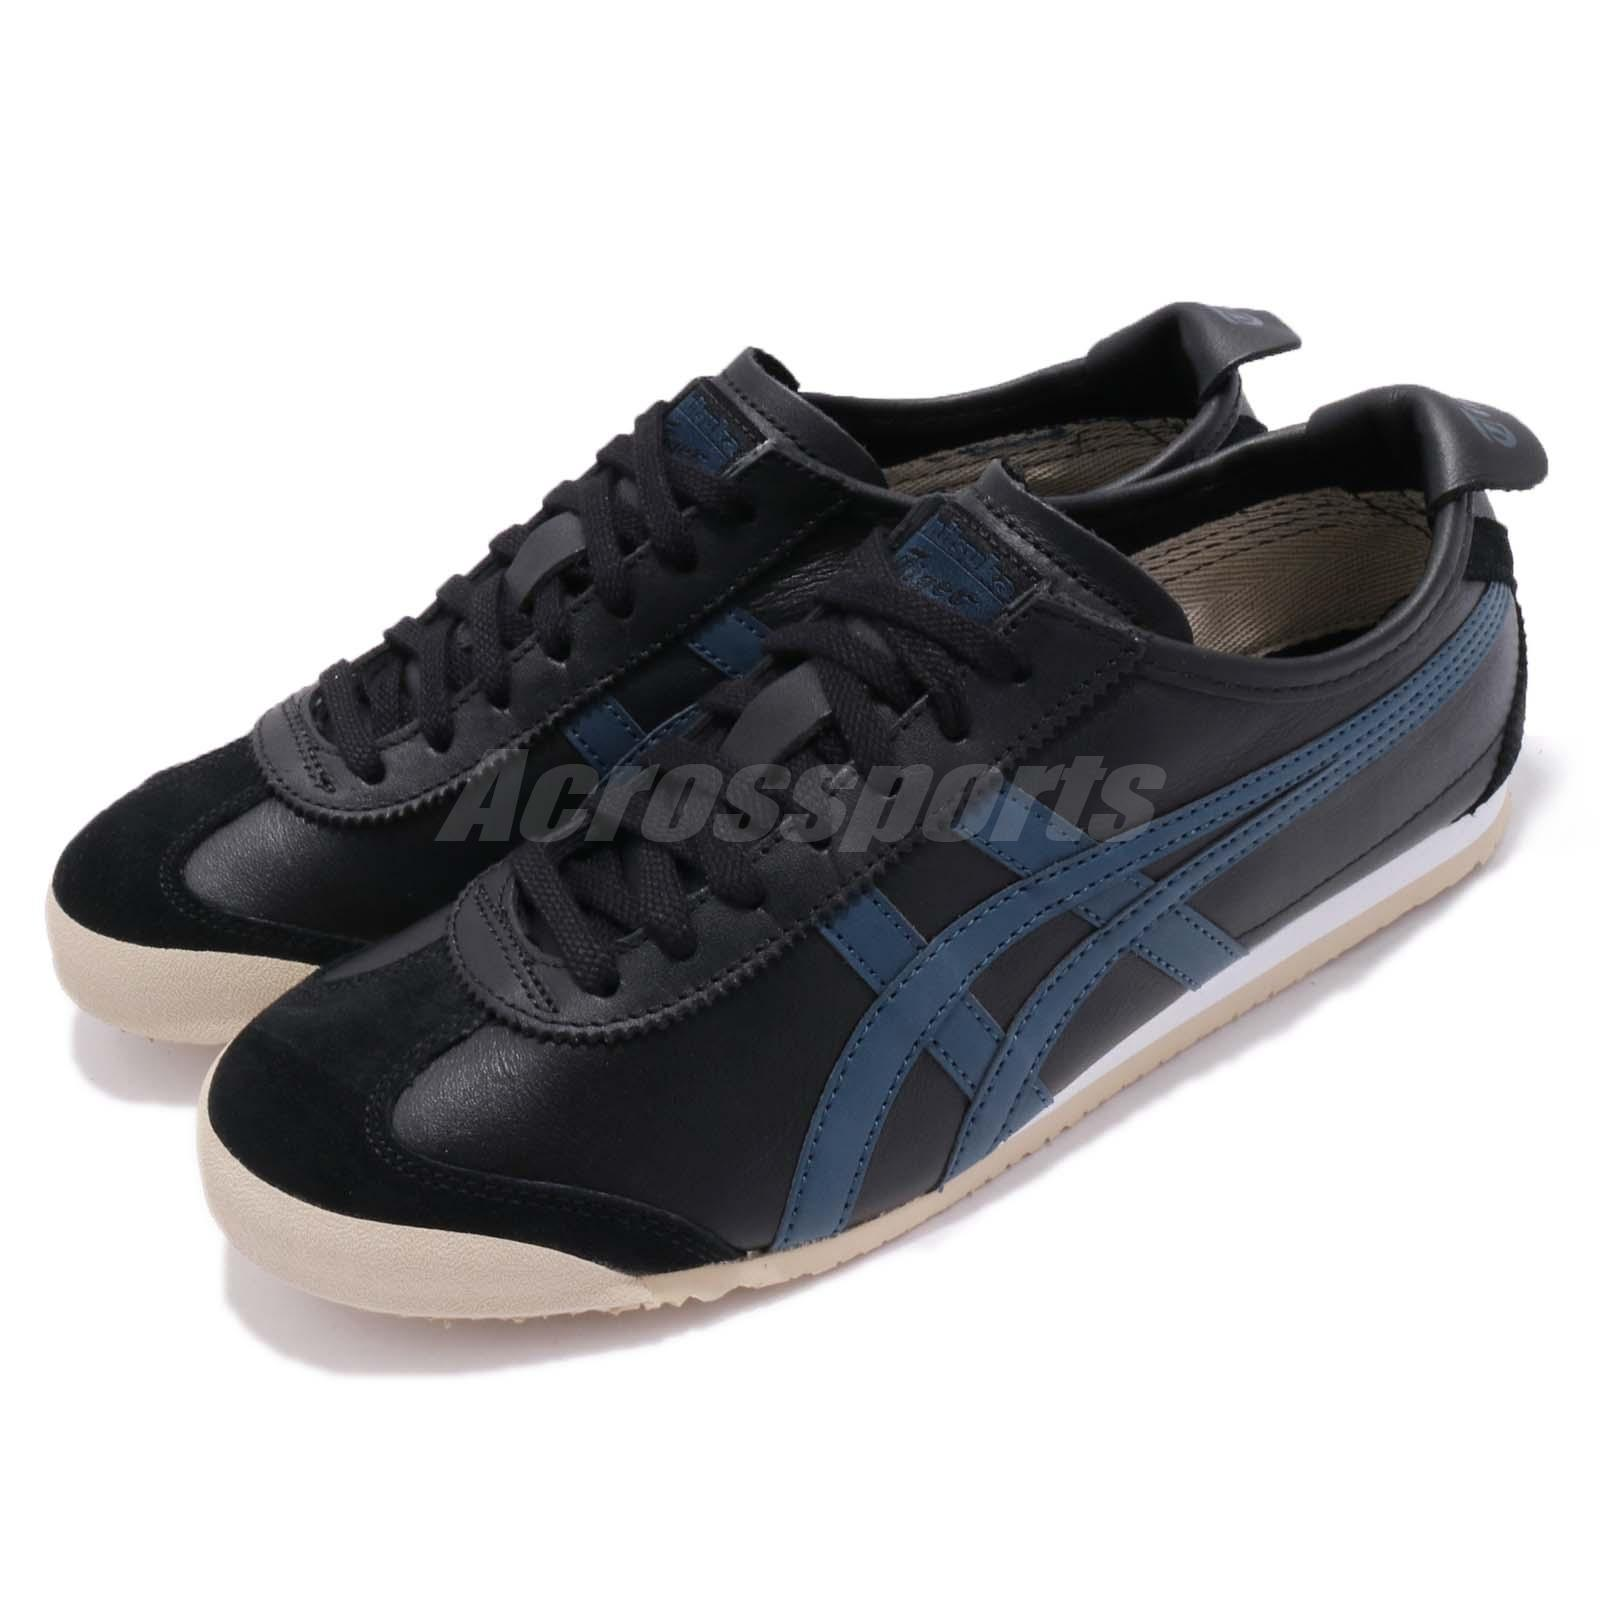 official photos 80eb0 275b8 Details about Asics Onitsuka Tiger Mexico 66 Black Blue Men Running Shoes  Sneakers D4J2L-9058